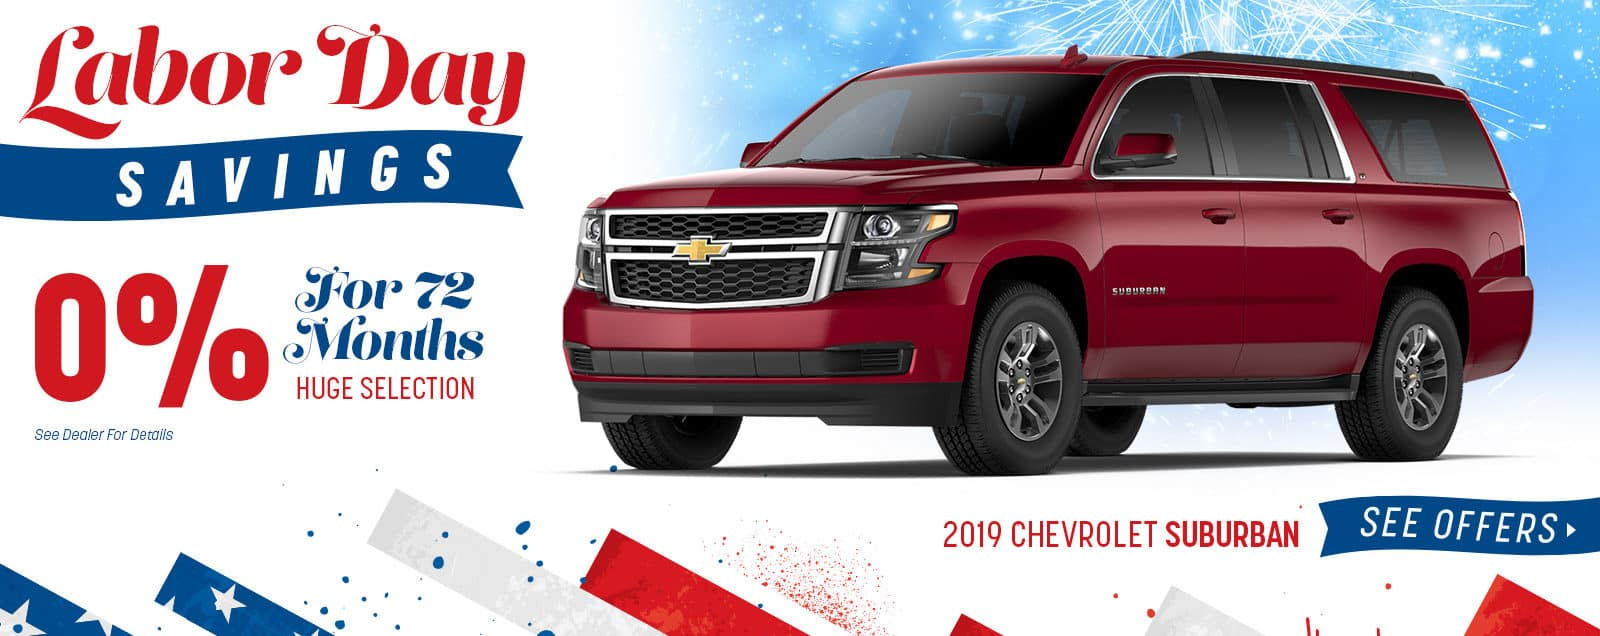 2019 Suburban - Labor Day Sale